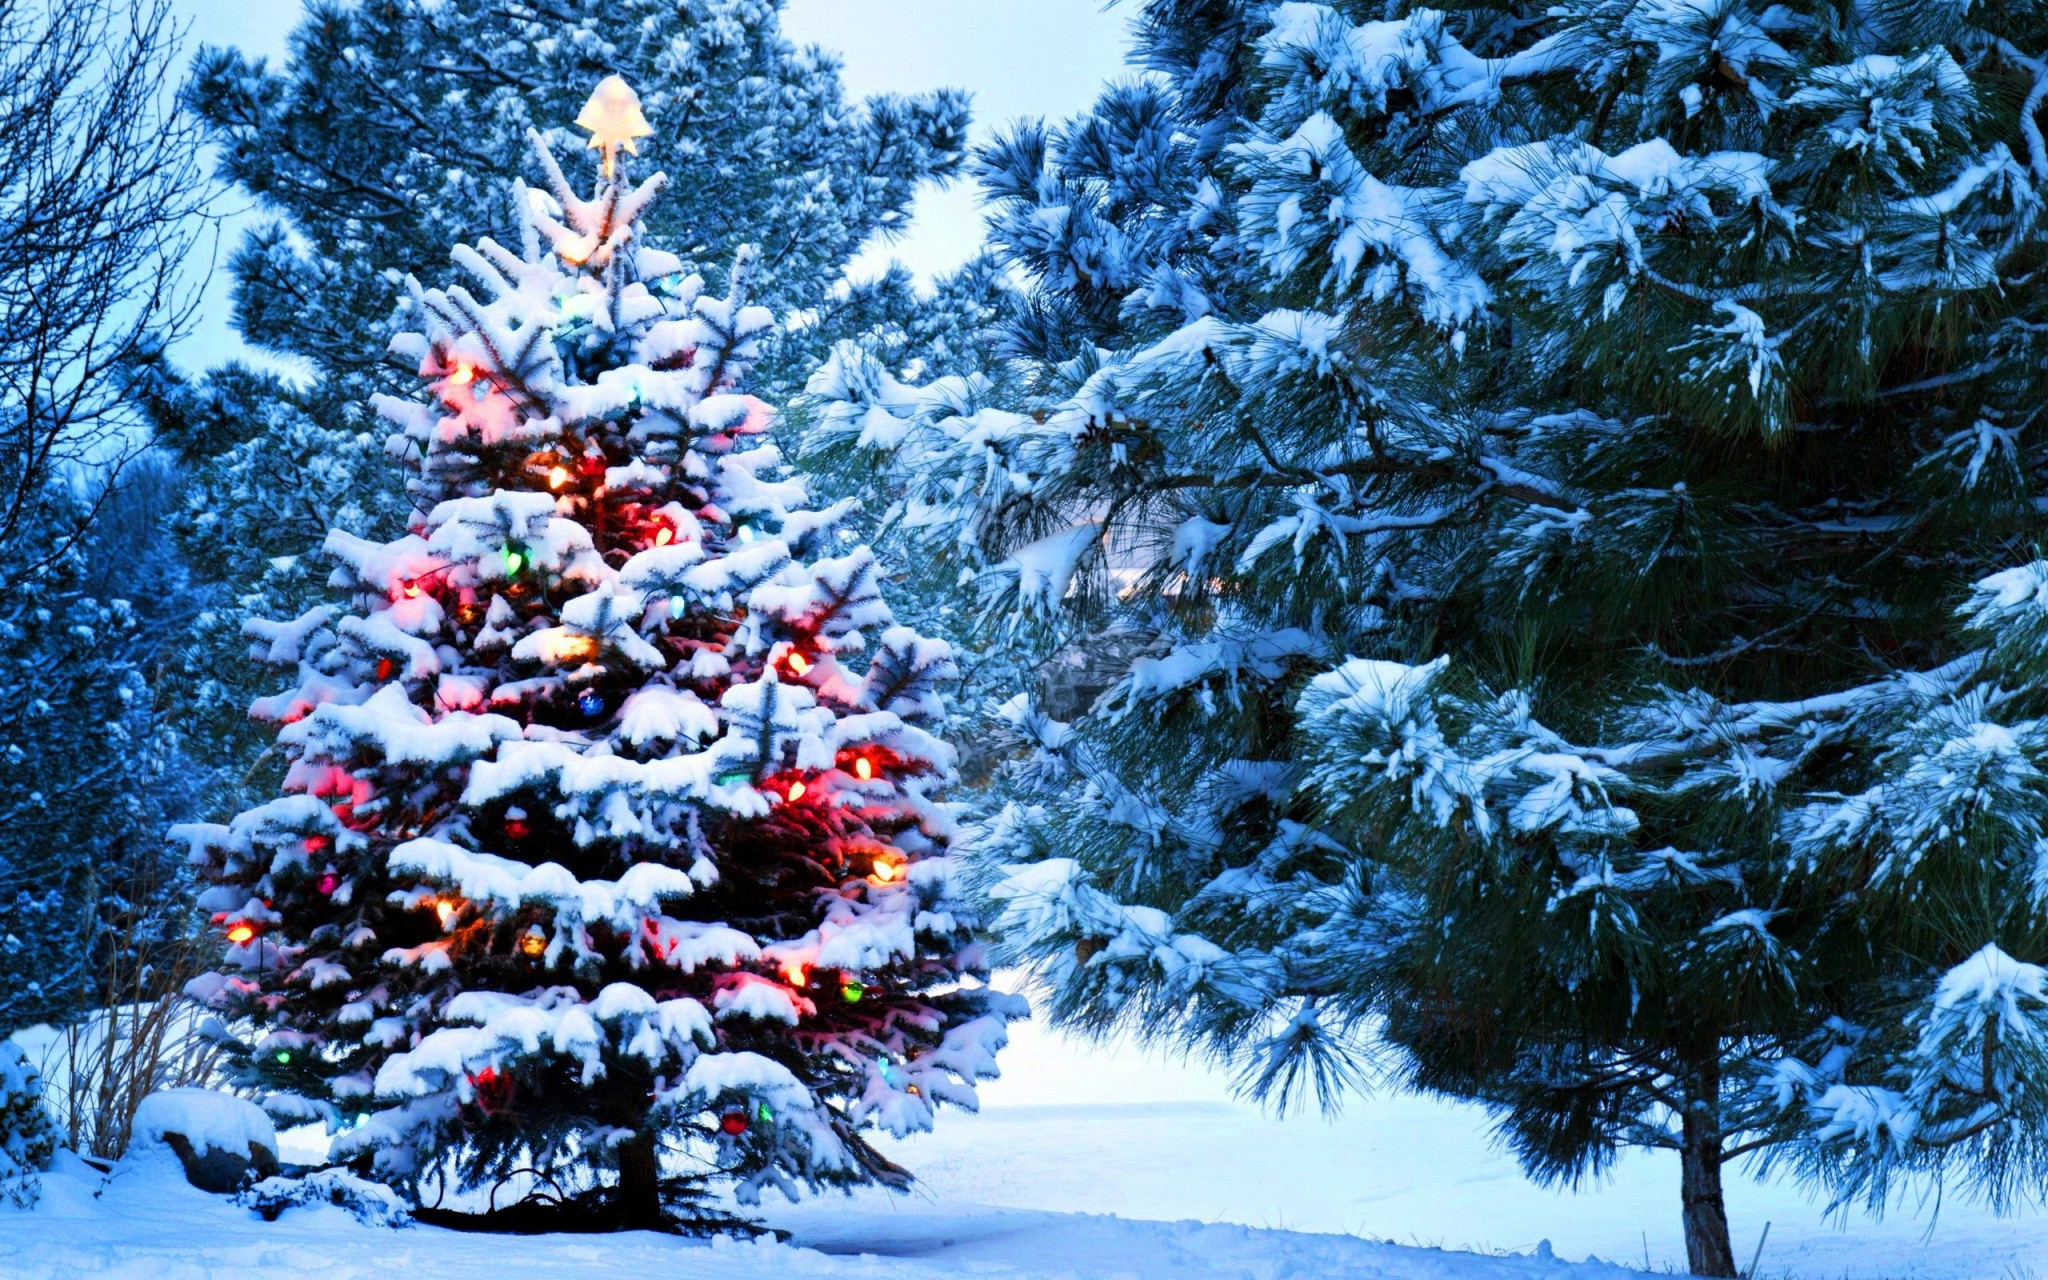 Christmas-snow-New-Year-tree-lights_2560x1600